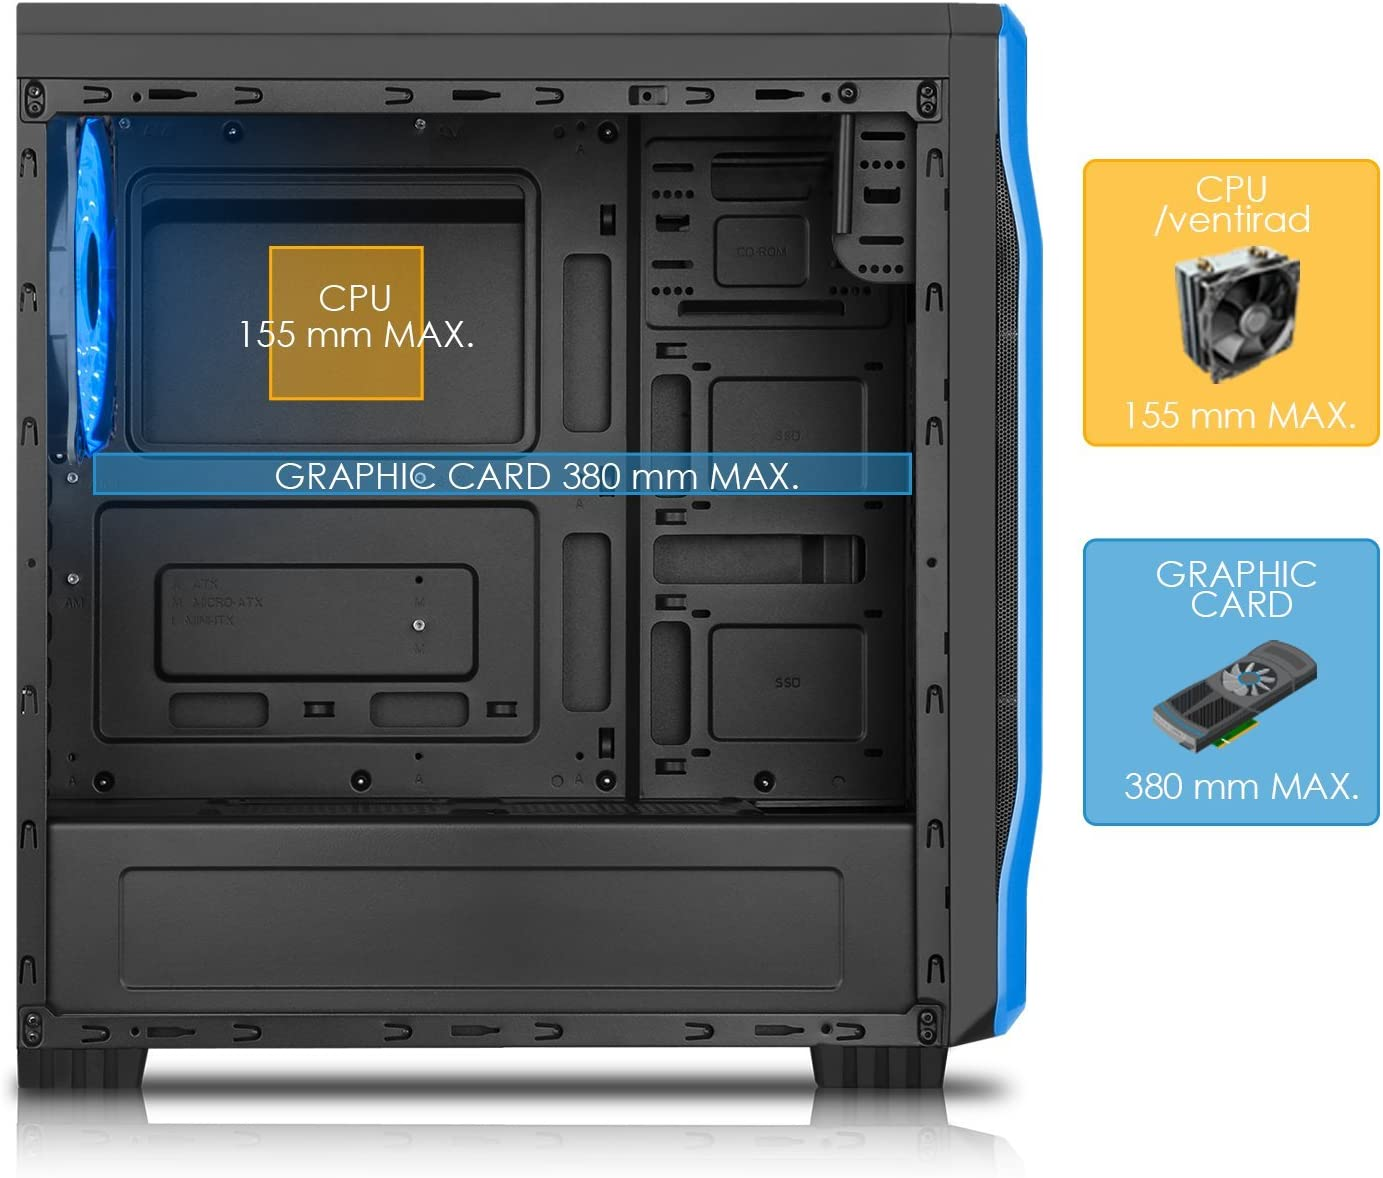 EMPIRE GAMING - Caja PC para Juegos DarkRaw Negra LED Azul: USB 3.0 y USB 2.0, 4 Ventiladores LED 120 mm + Controlador de Ventiladores, Pared Lateral 100% Transparente - ATX/mATX/mITX: Amazon.es: Informática